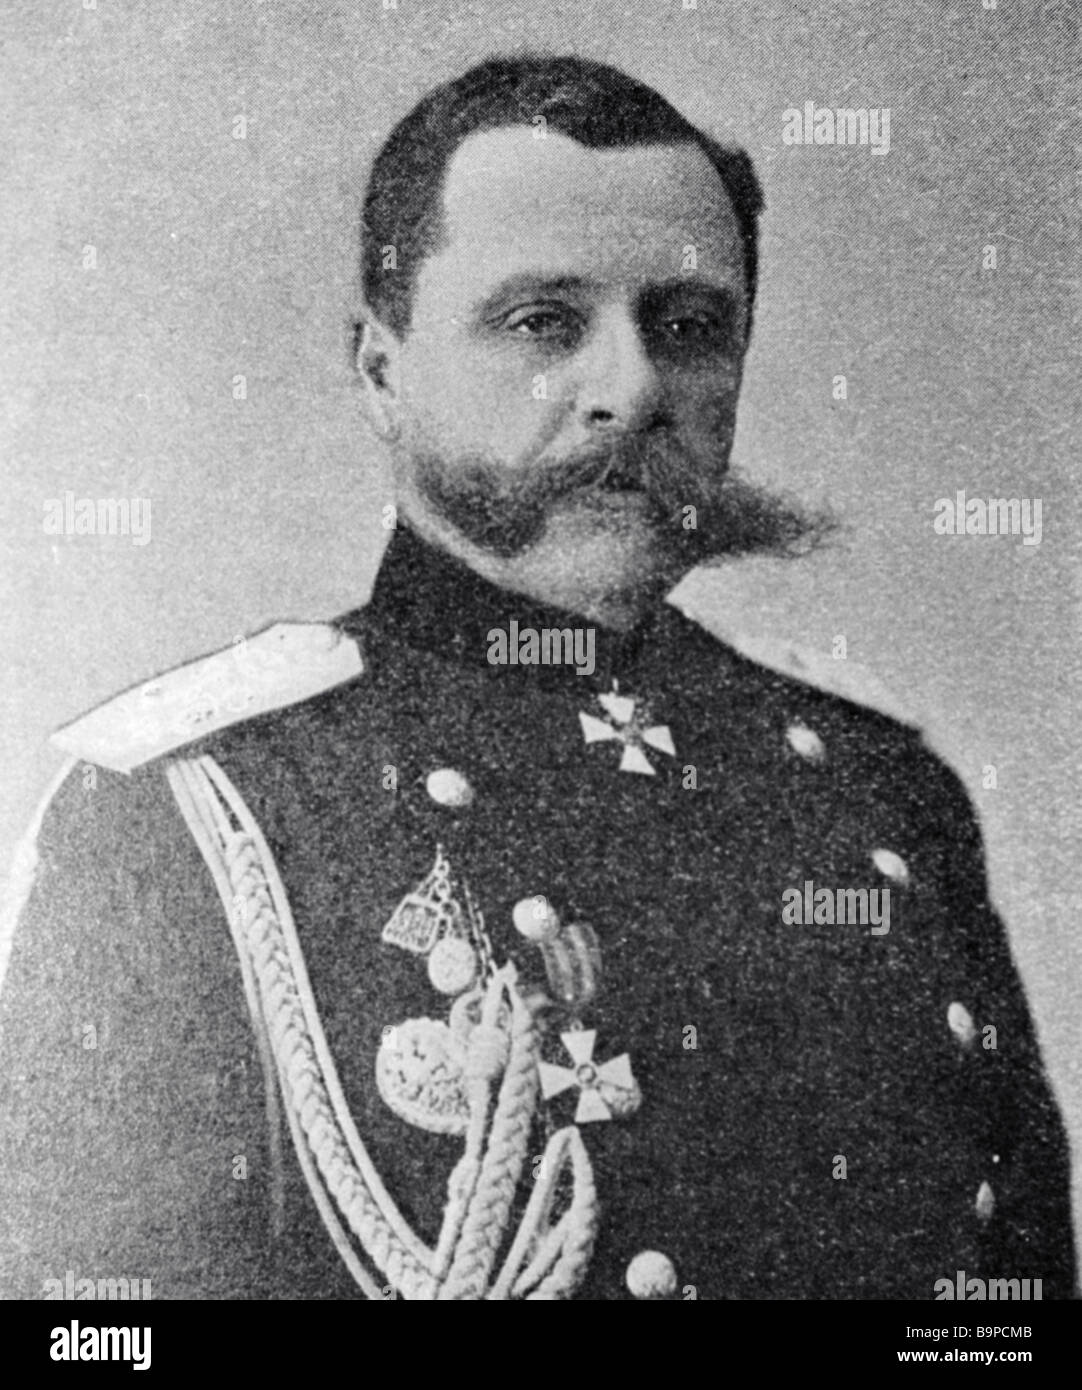 General Pavel Rennenkampf commanderof the Vilno military district s forces during World War One - Stock Image